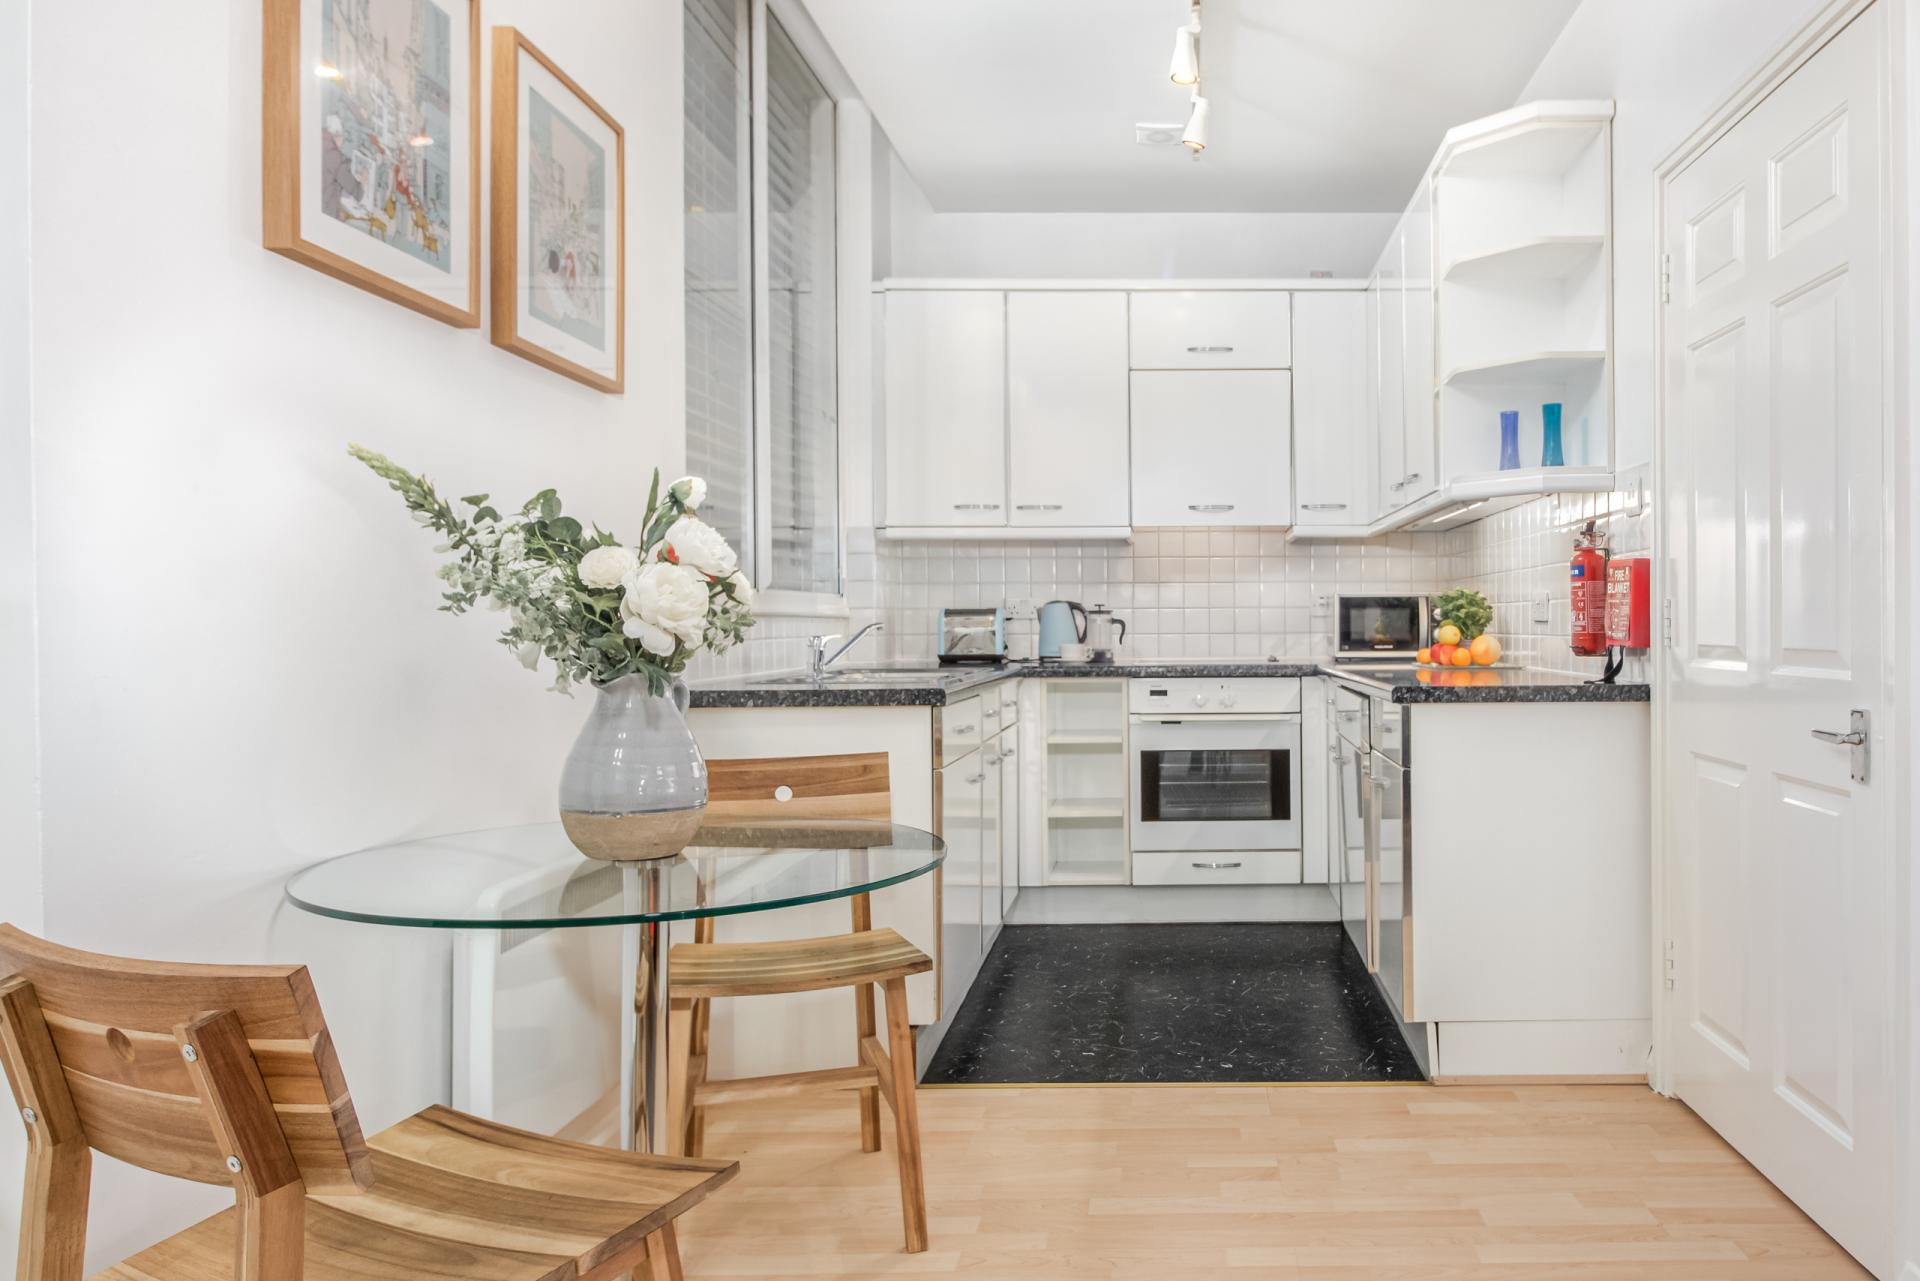 Kitchen at Priory House Apartments, City, London - Citybase Apartments